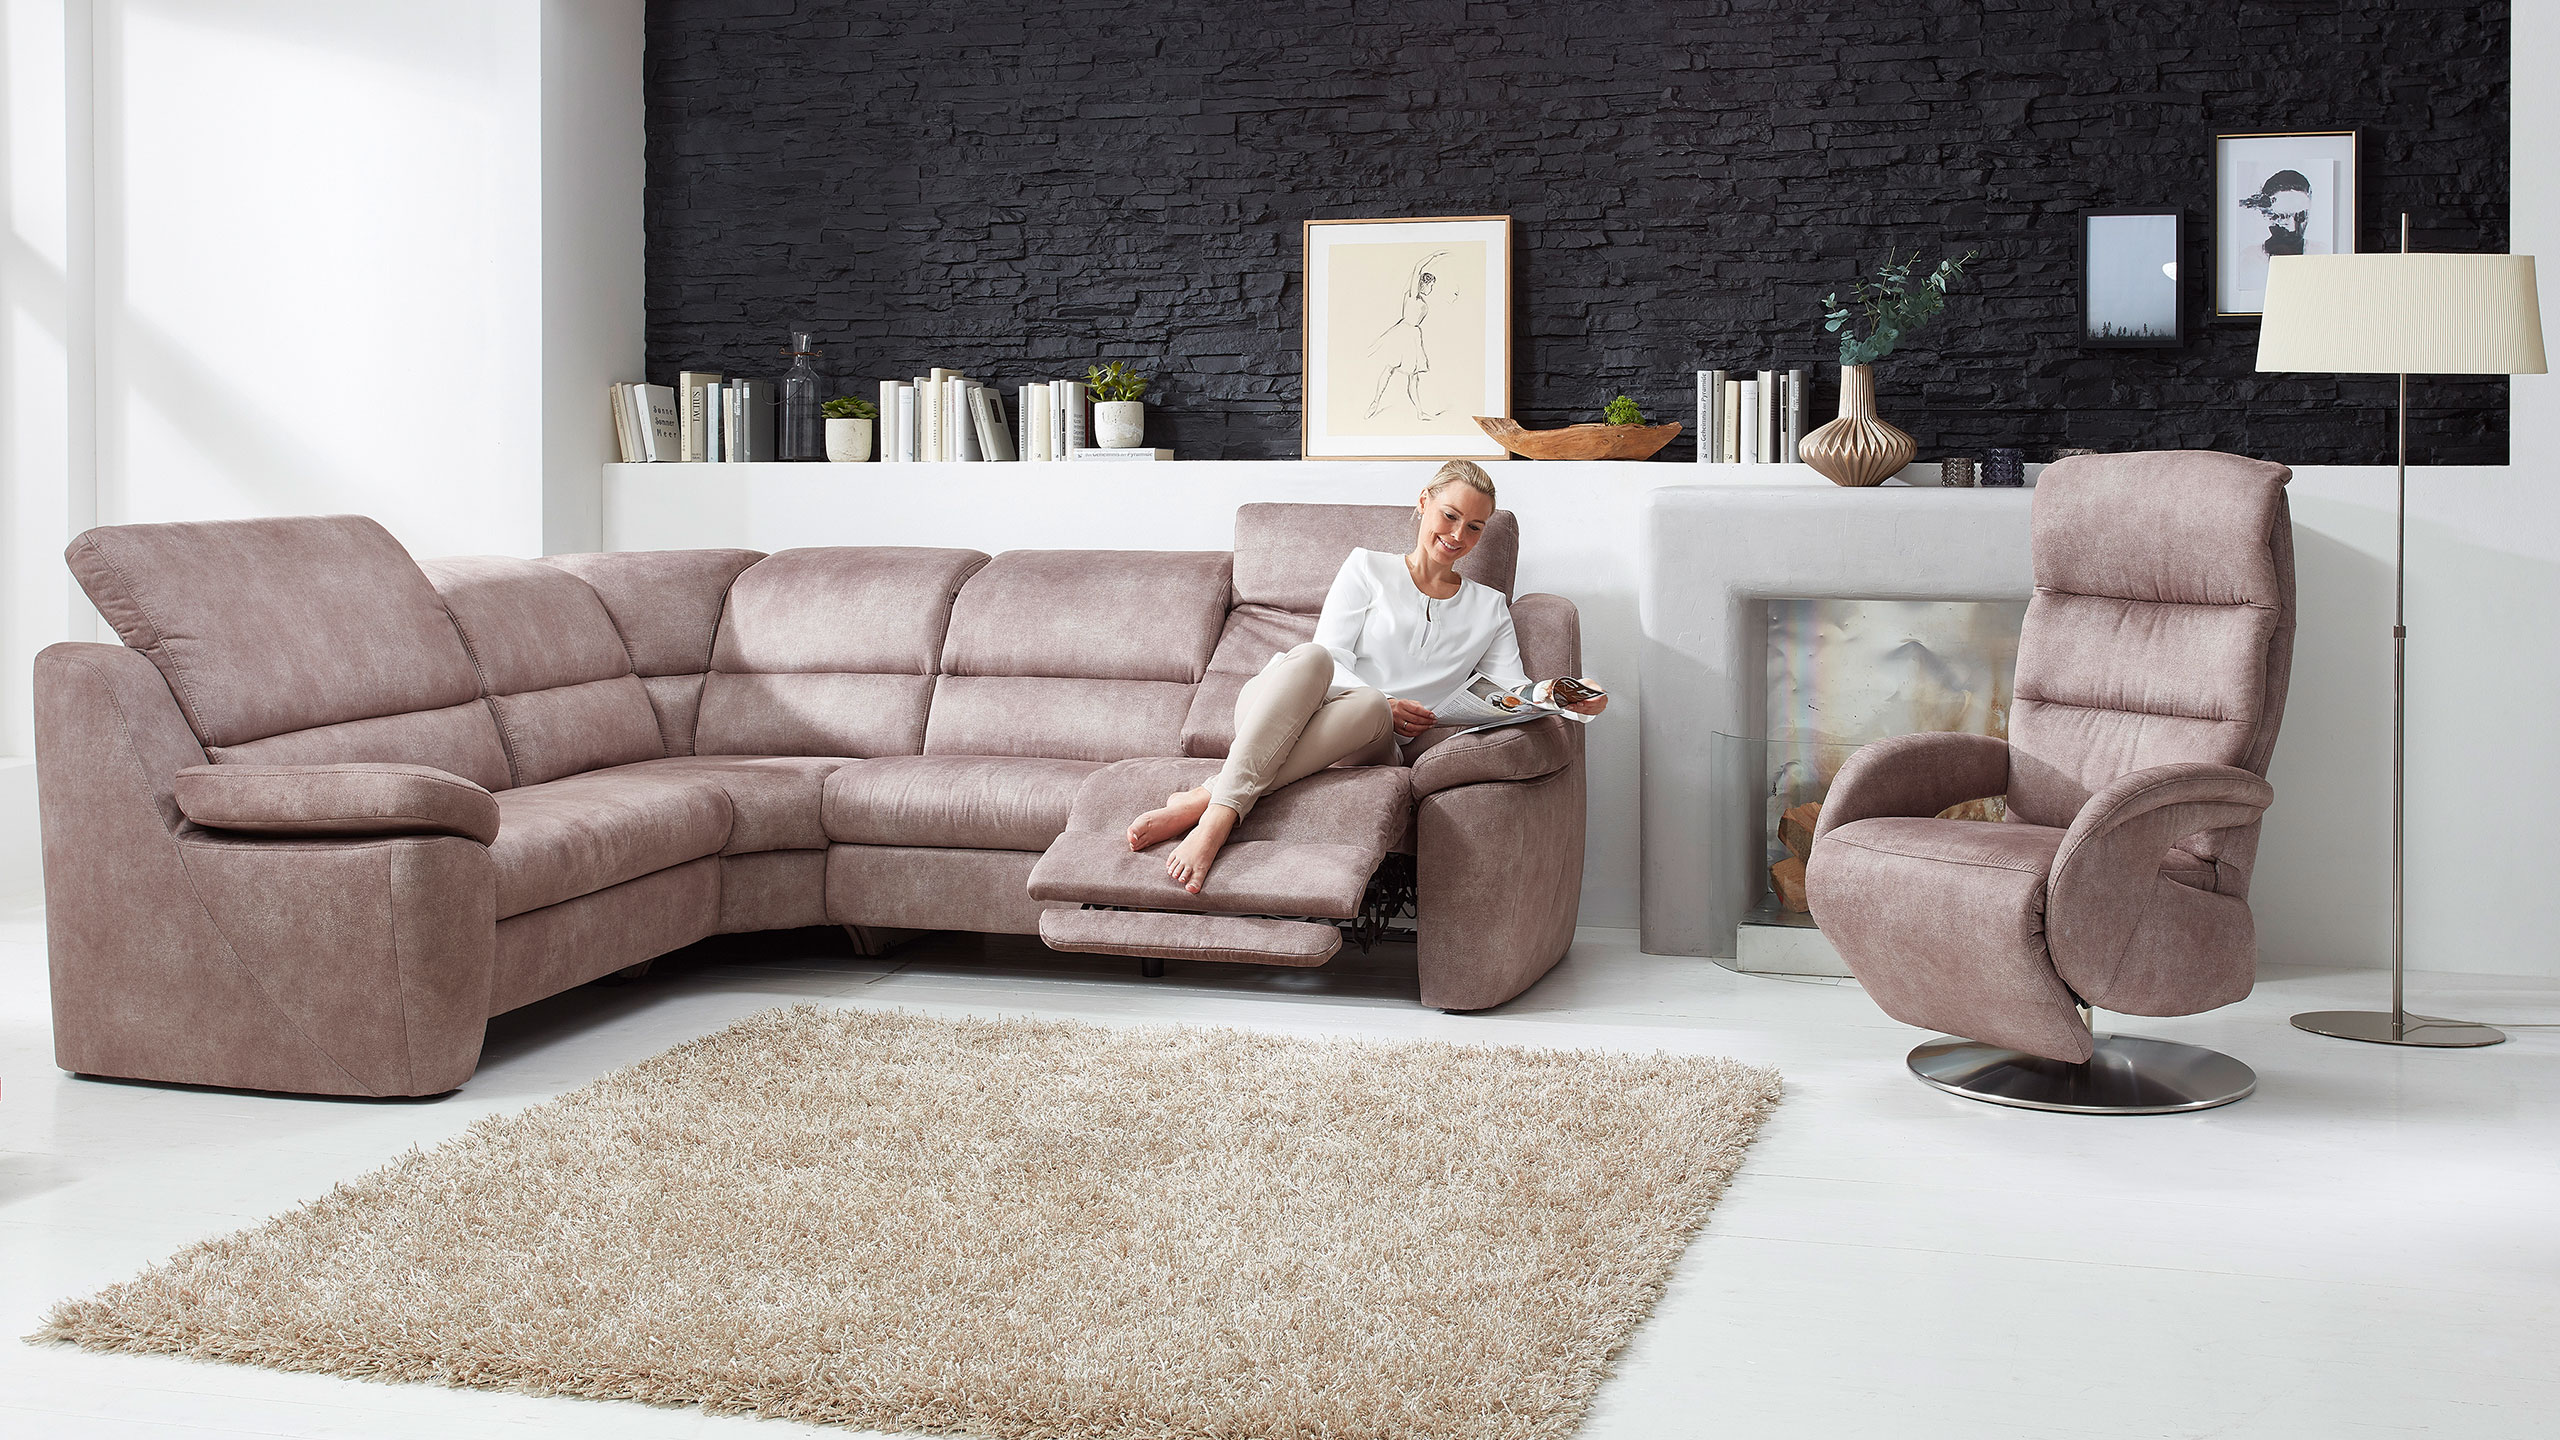 MultiMotion Ecksofa Stoff Braun